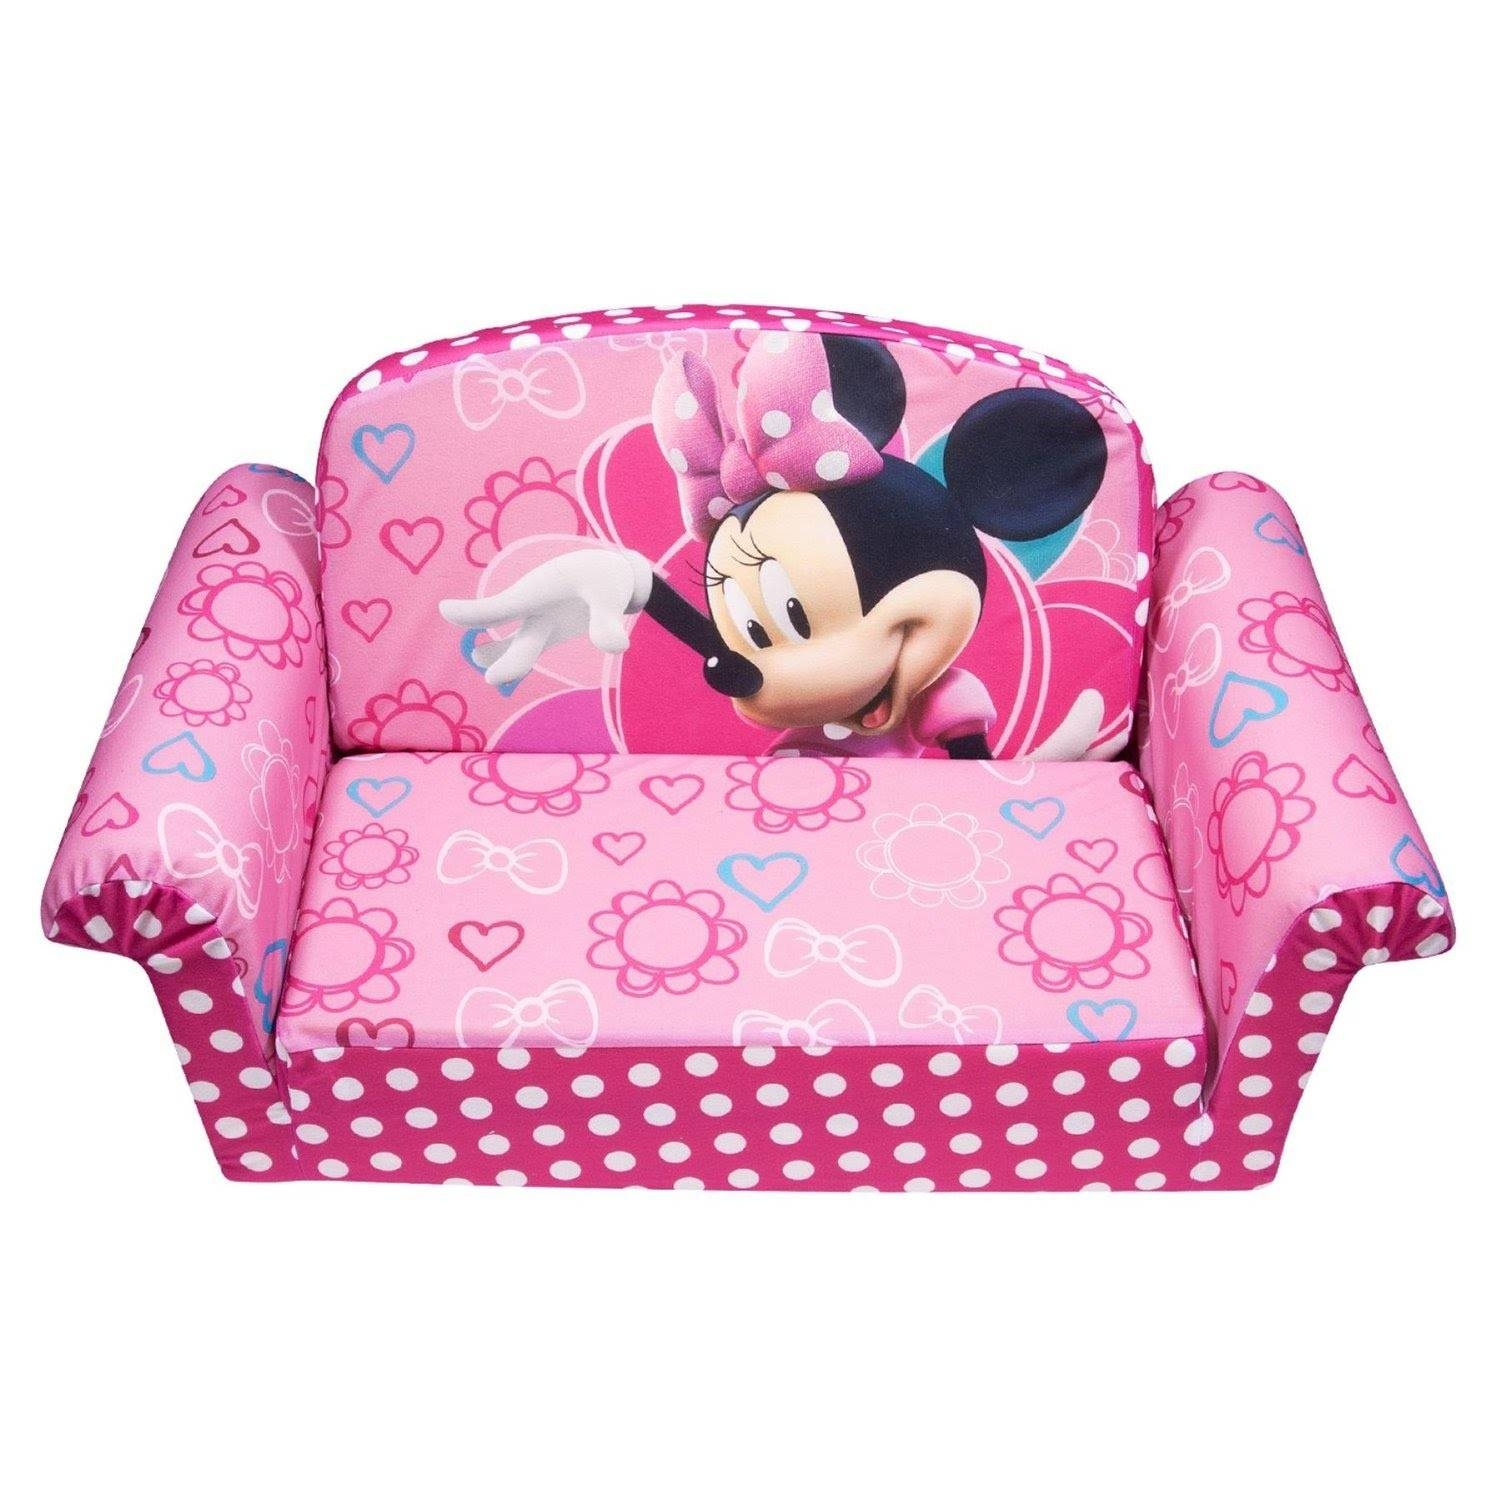 Review: Marshmallow Children's Furniture - 2 In 1 Flip Open Sofa for Children Sofa Chairs (Image 19 of 30)